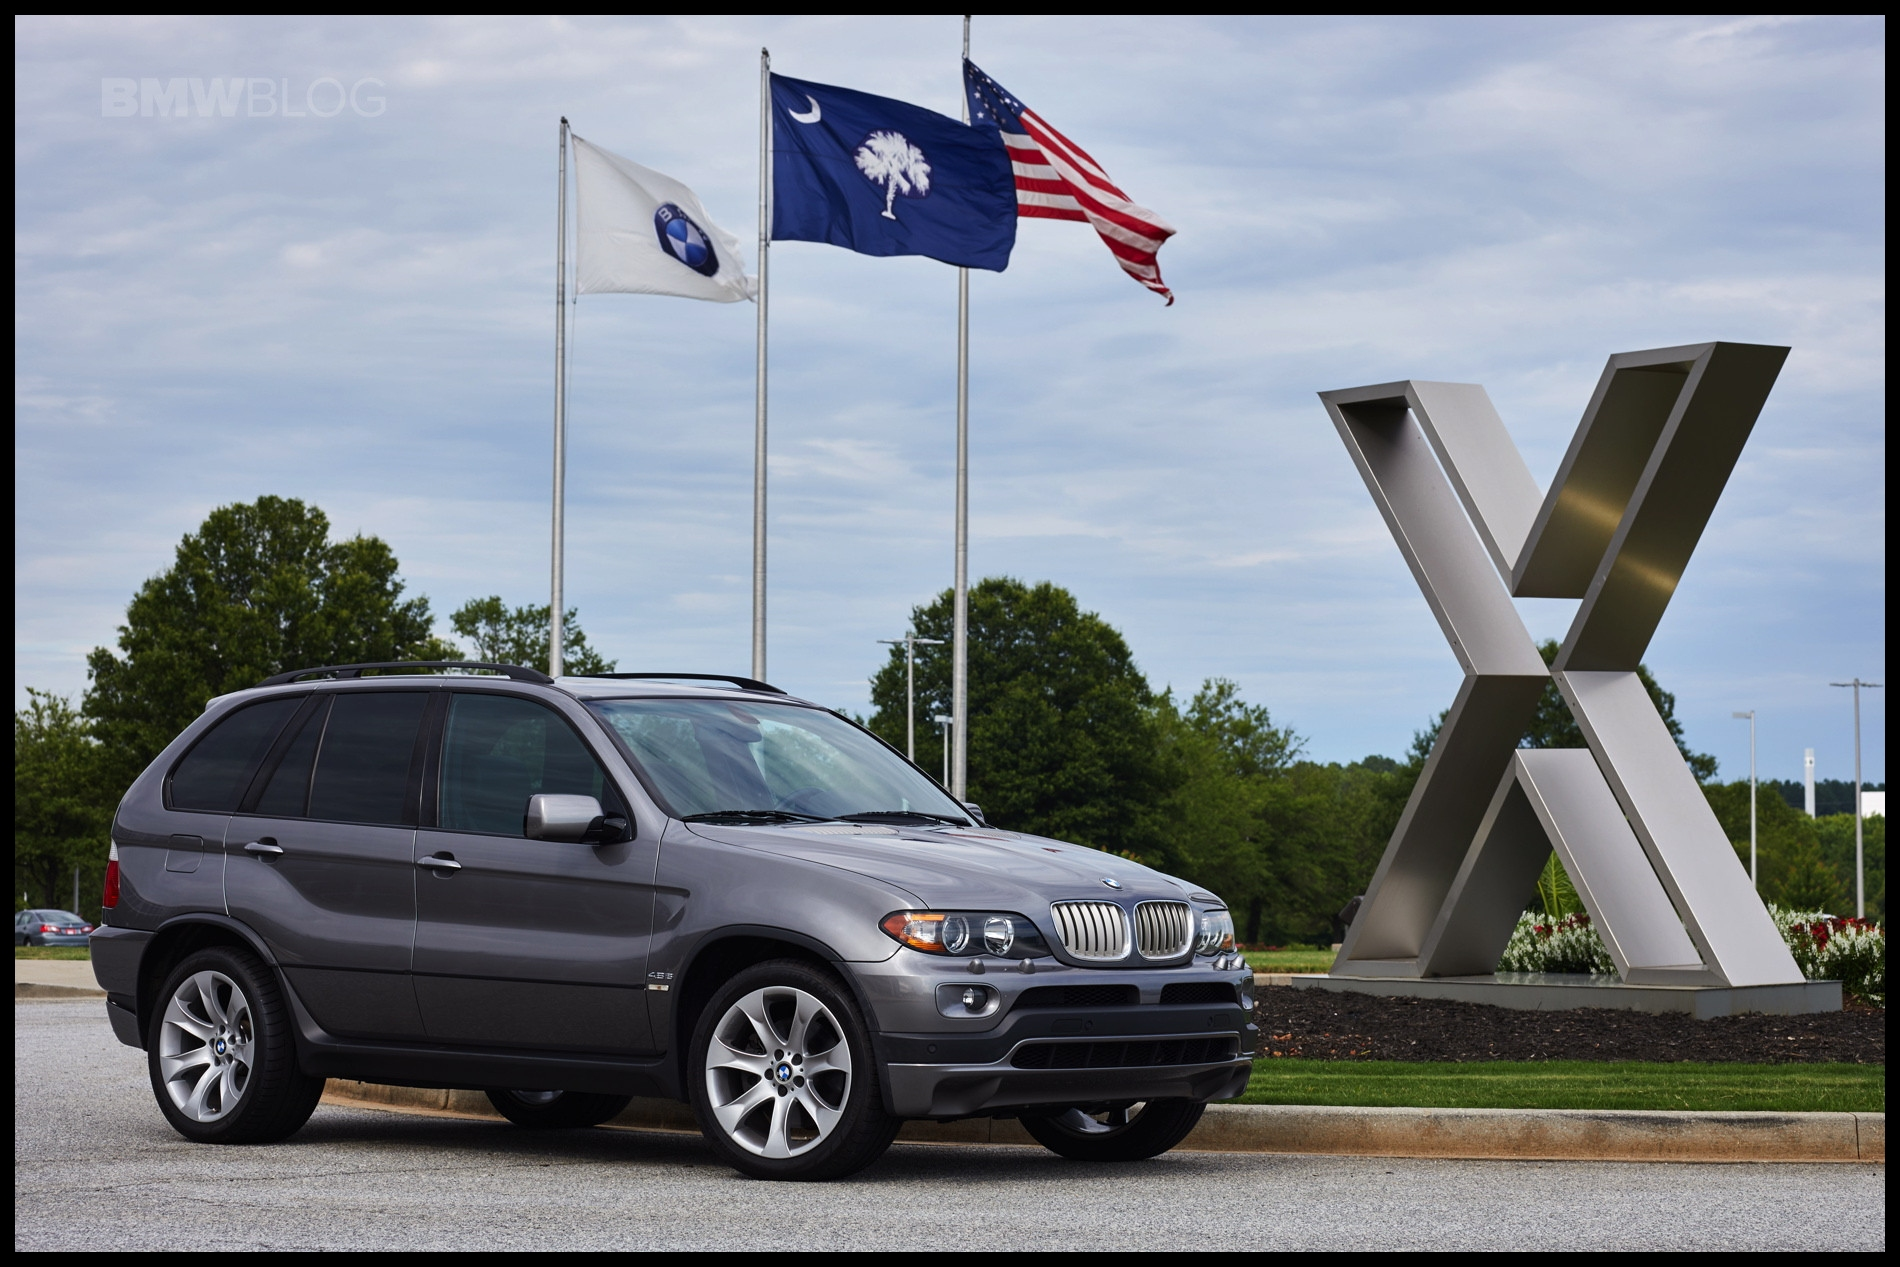 Bmw Plant Greenville Sc Elegant why Bmw Chose south Carolina as their Second Home 19elegant